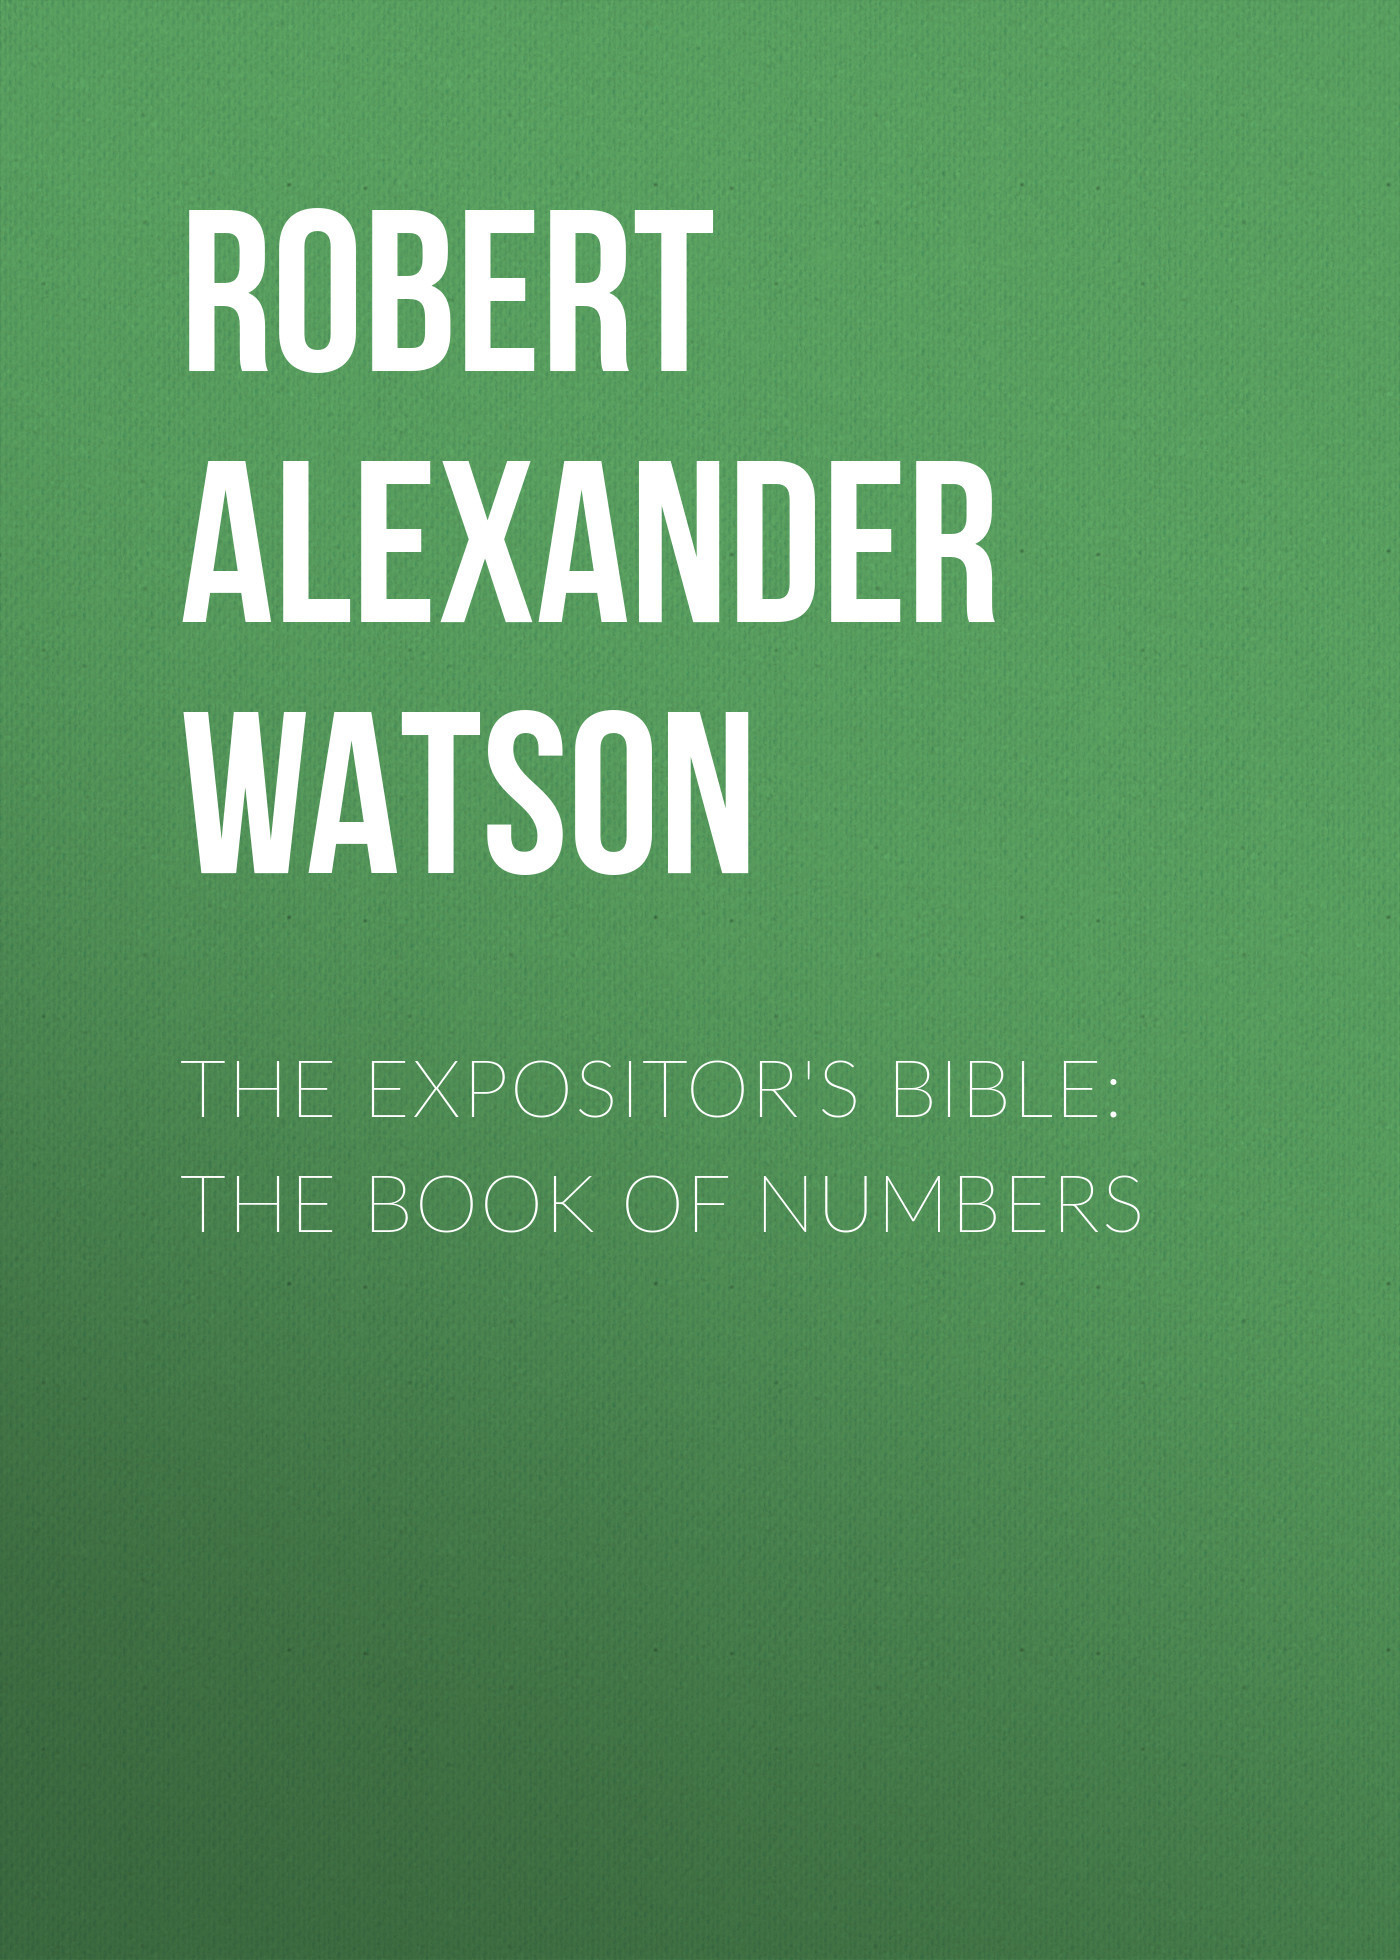 Robert Alexander Watson The Expositor's Bible: The Book of Numbers